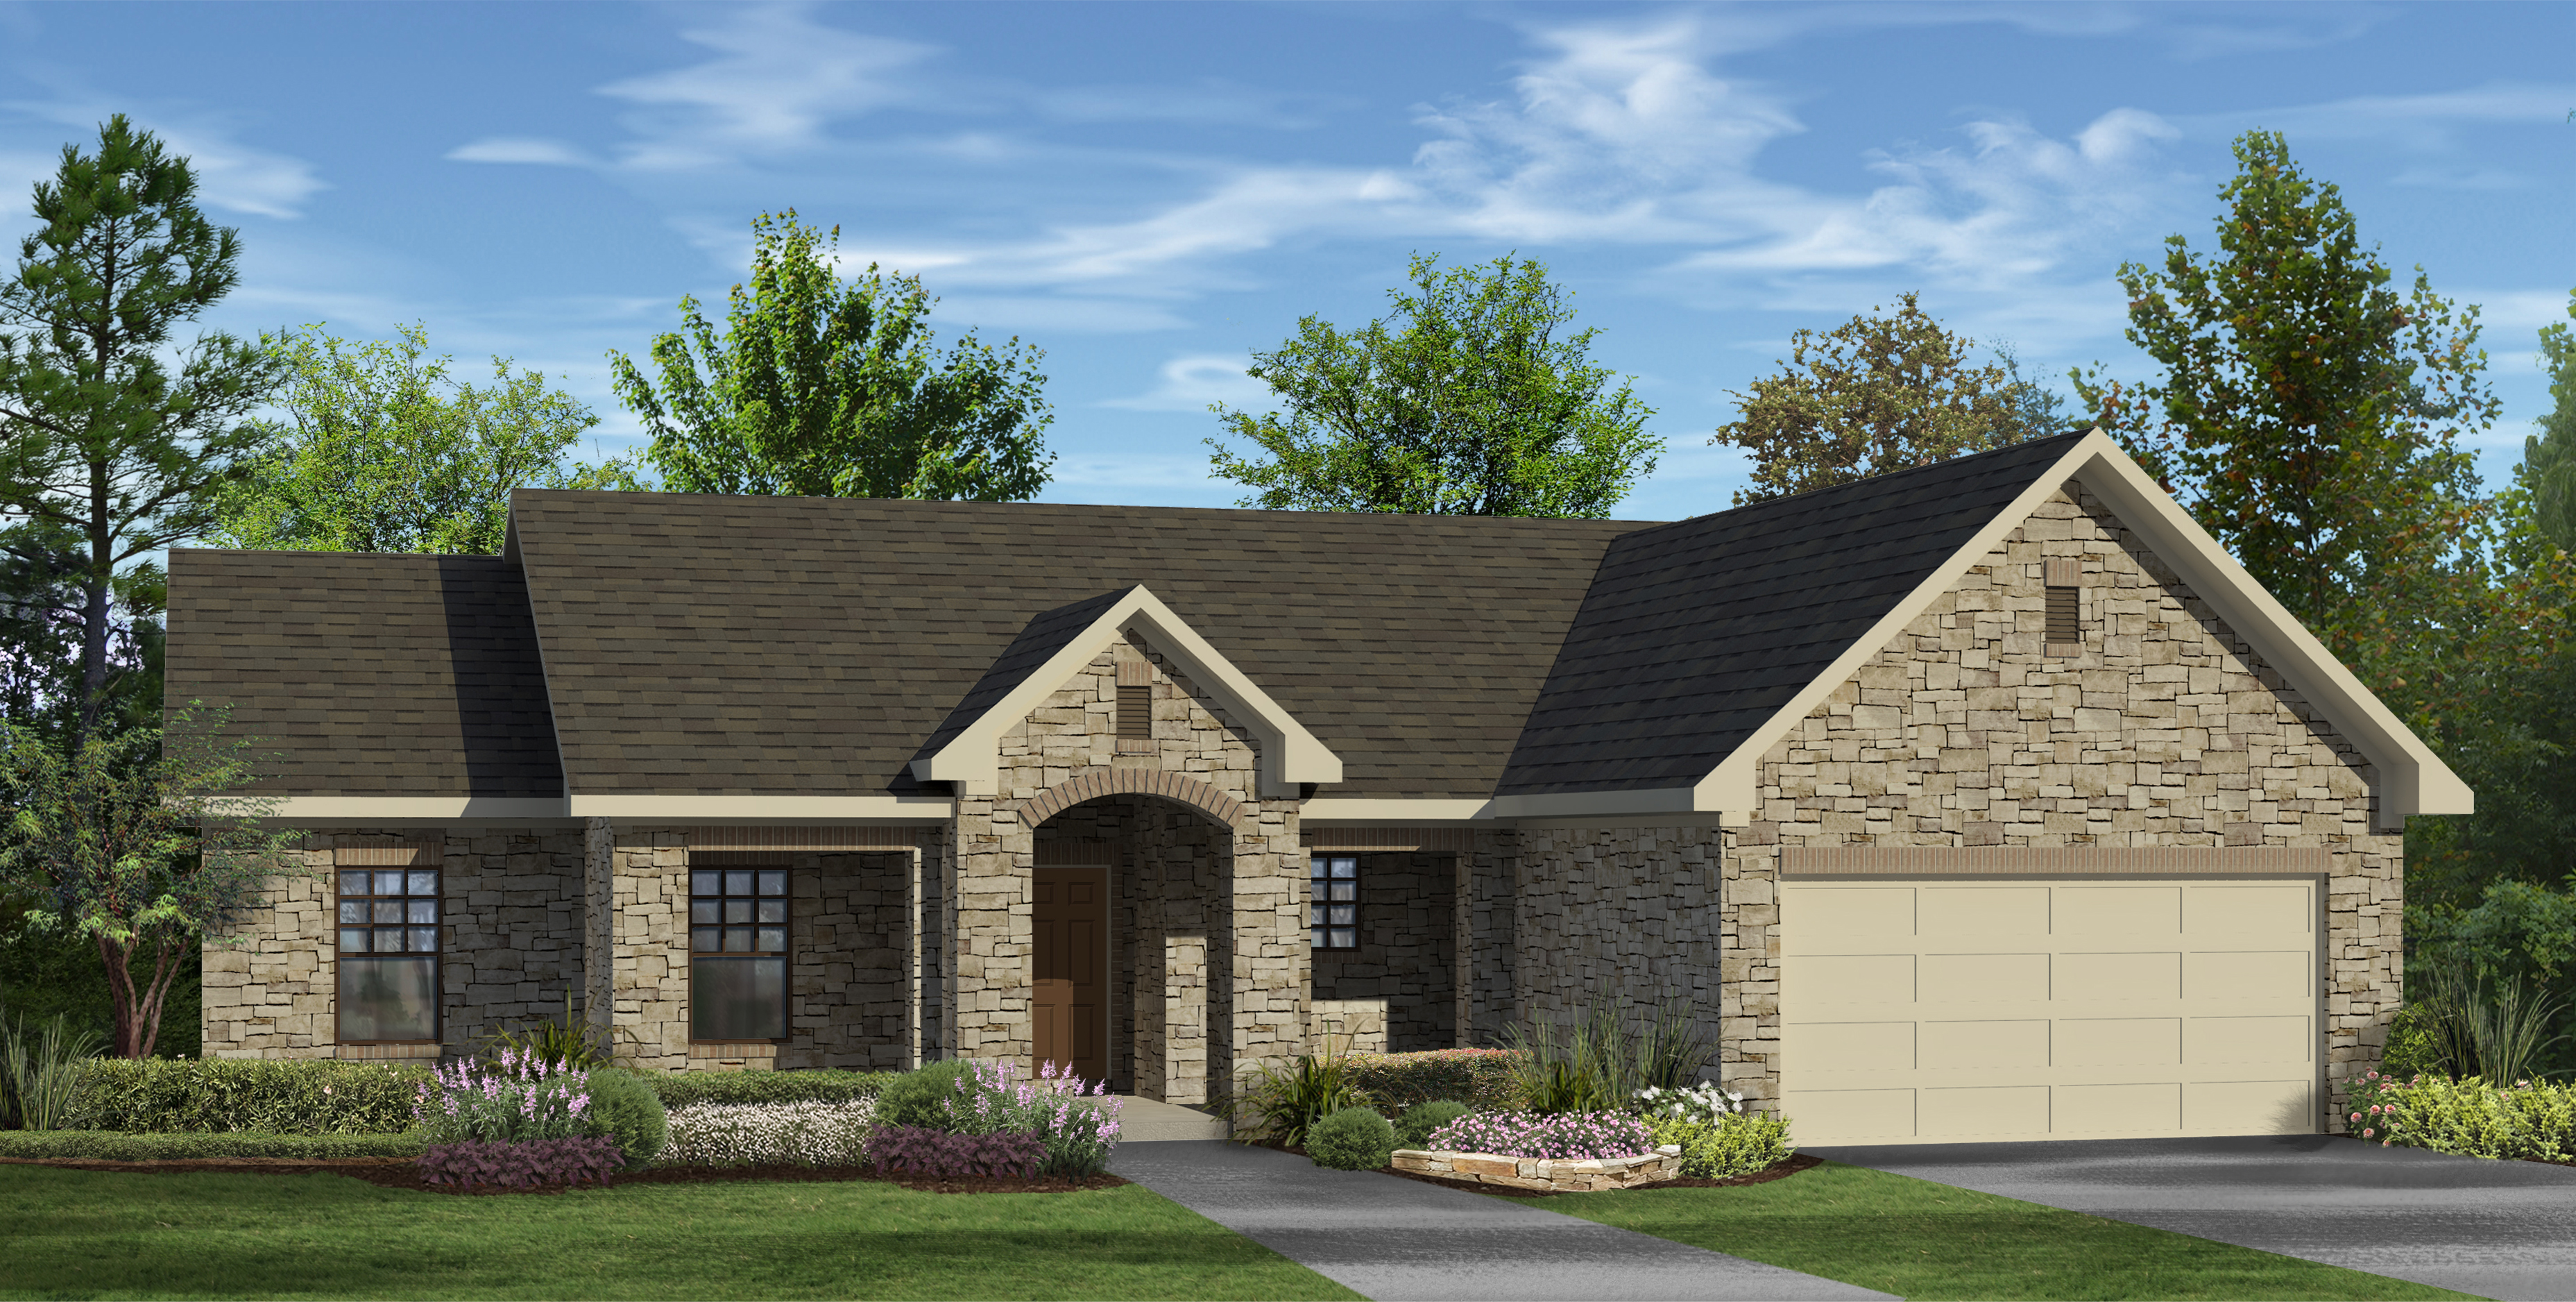 1 534 sq ft house plan 4 bed 2 bath 1 story the for Houston custom home builders floor plans